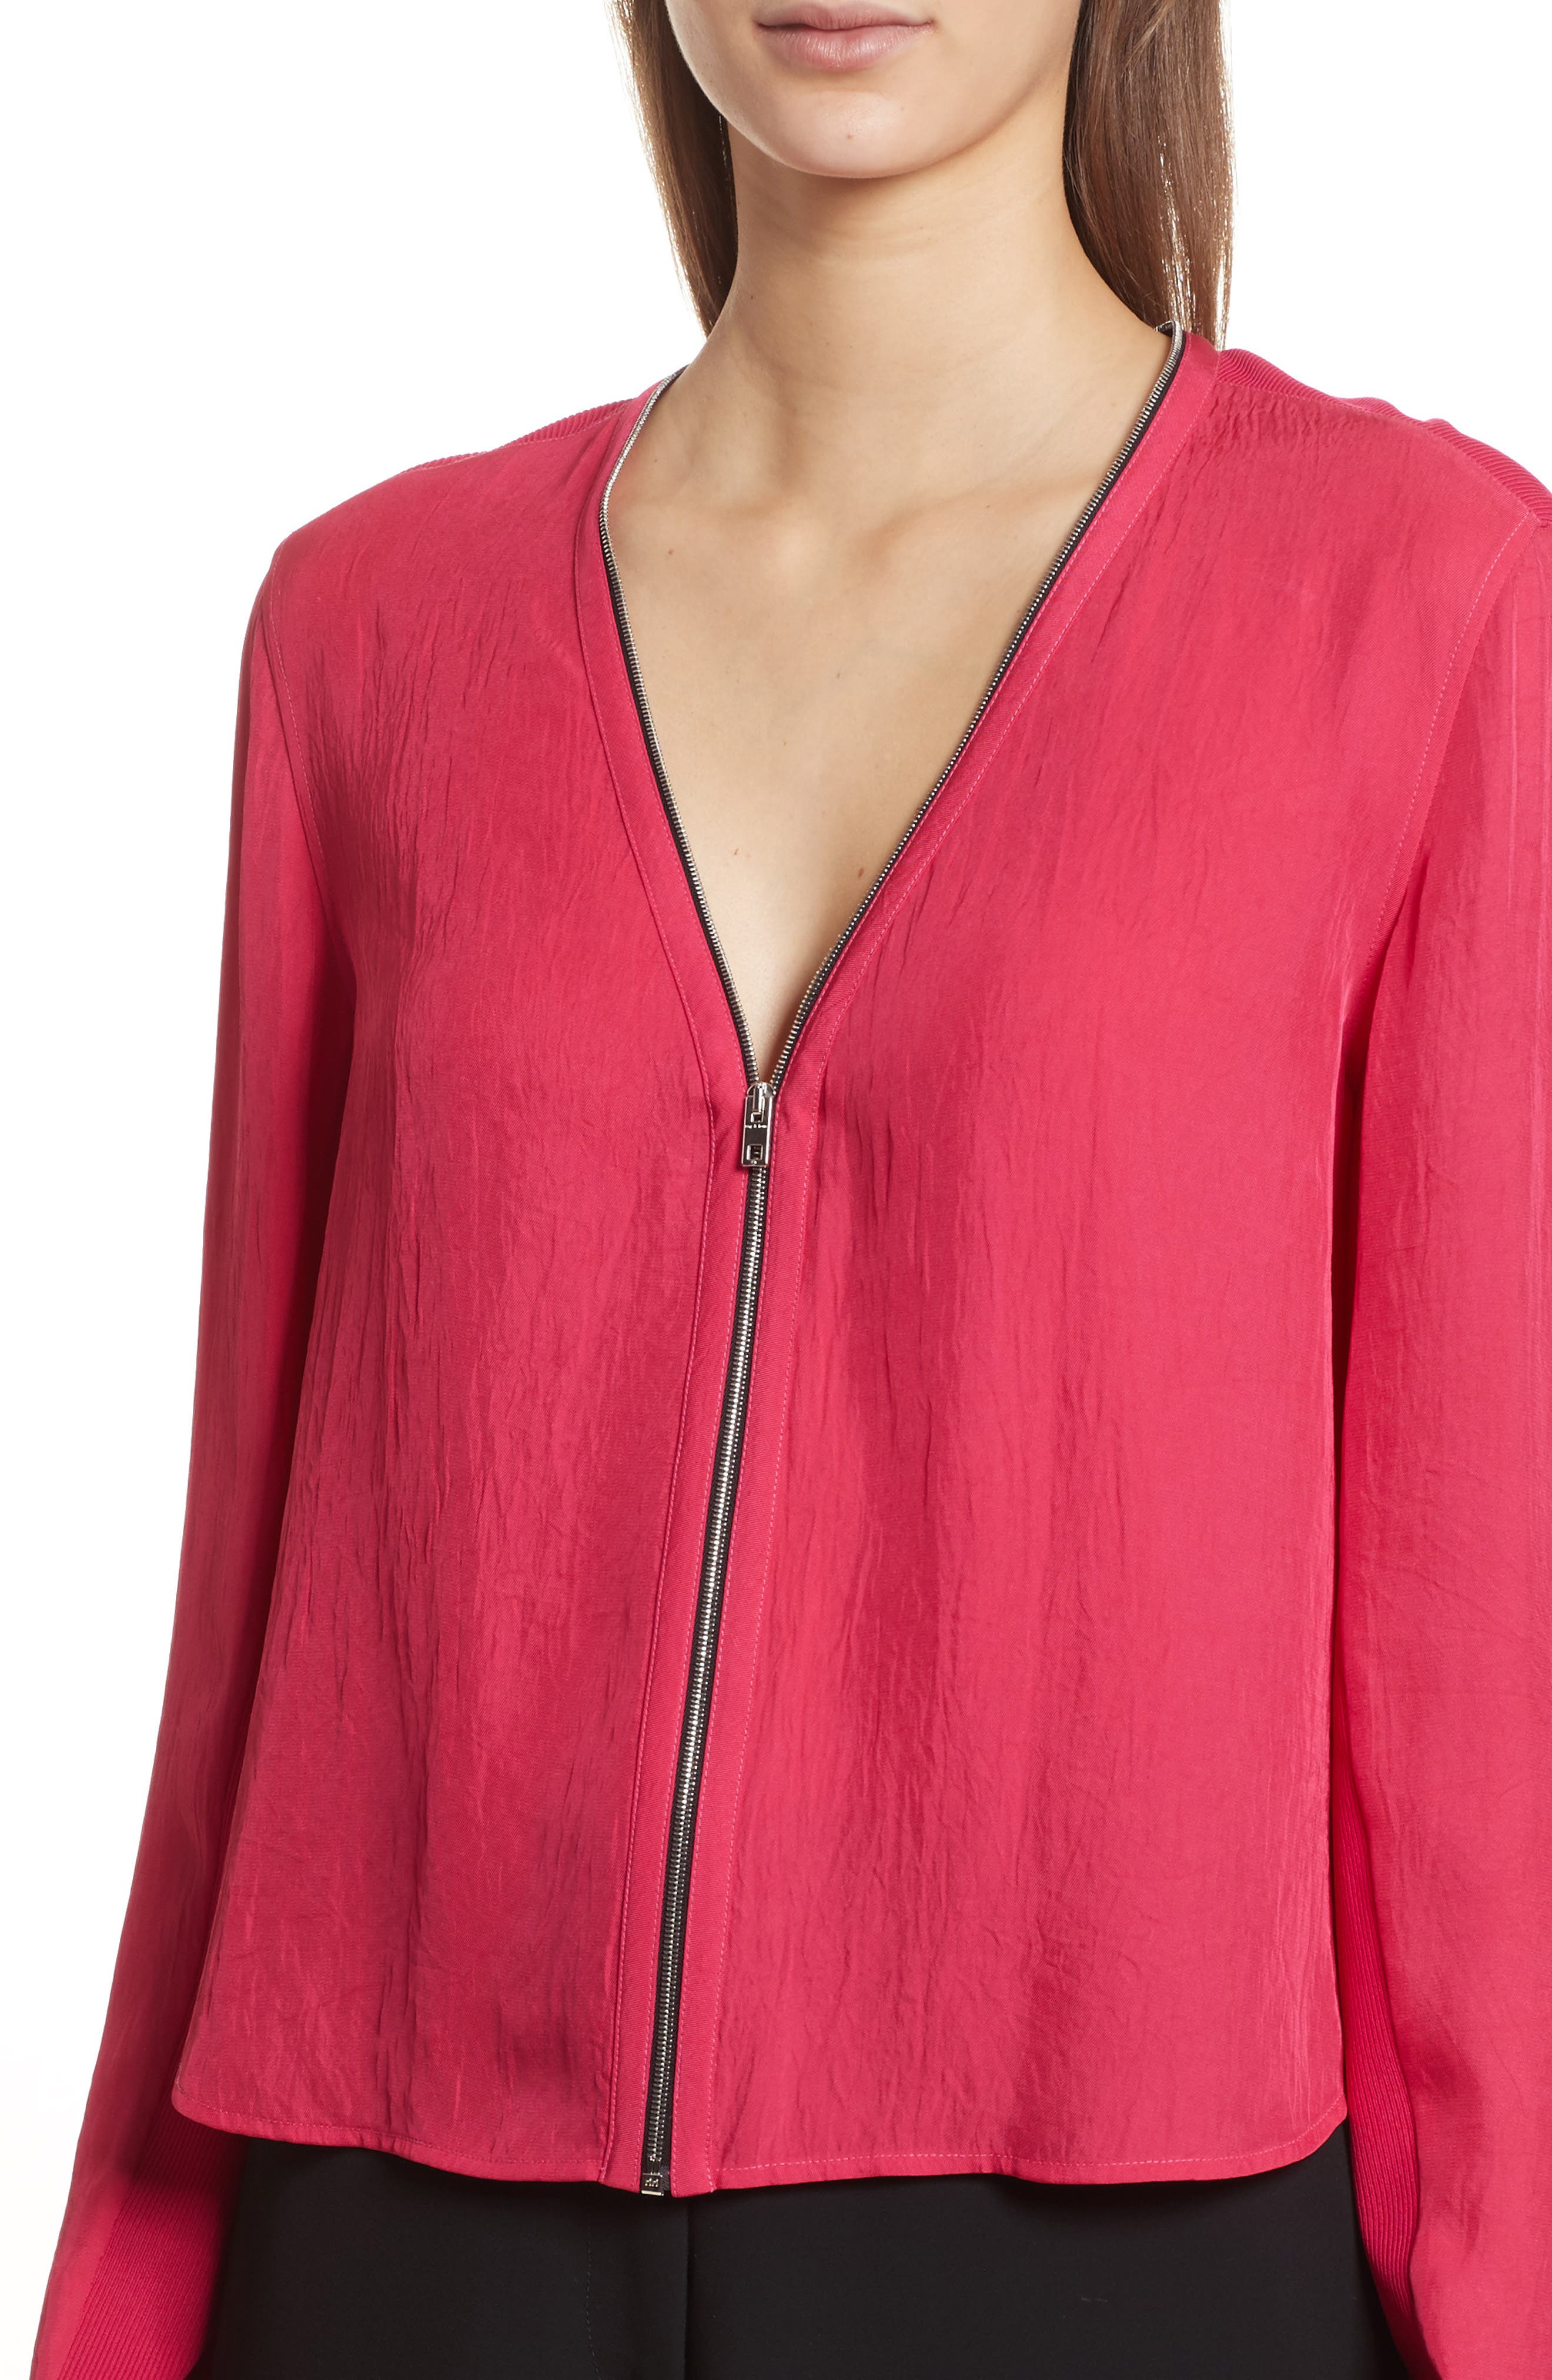 Vanessa Zip Front Blouse,                             Alternate thumbnail 4, color,                             Bright Rose